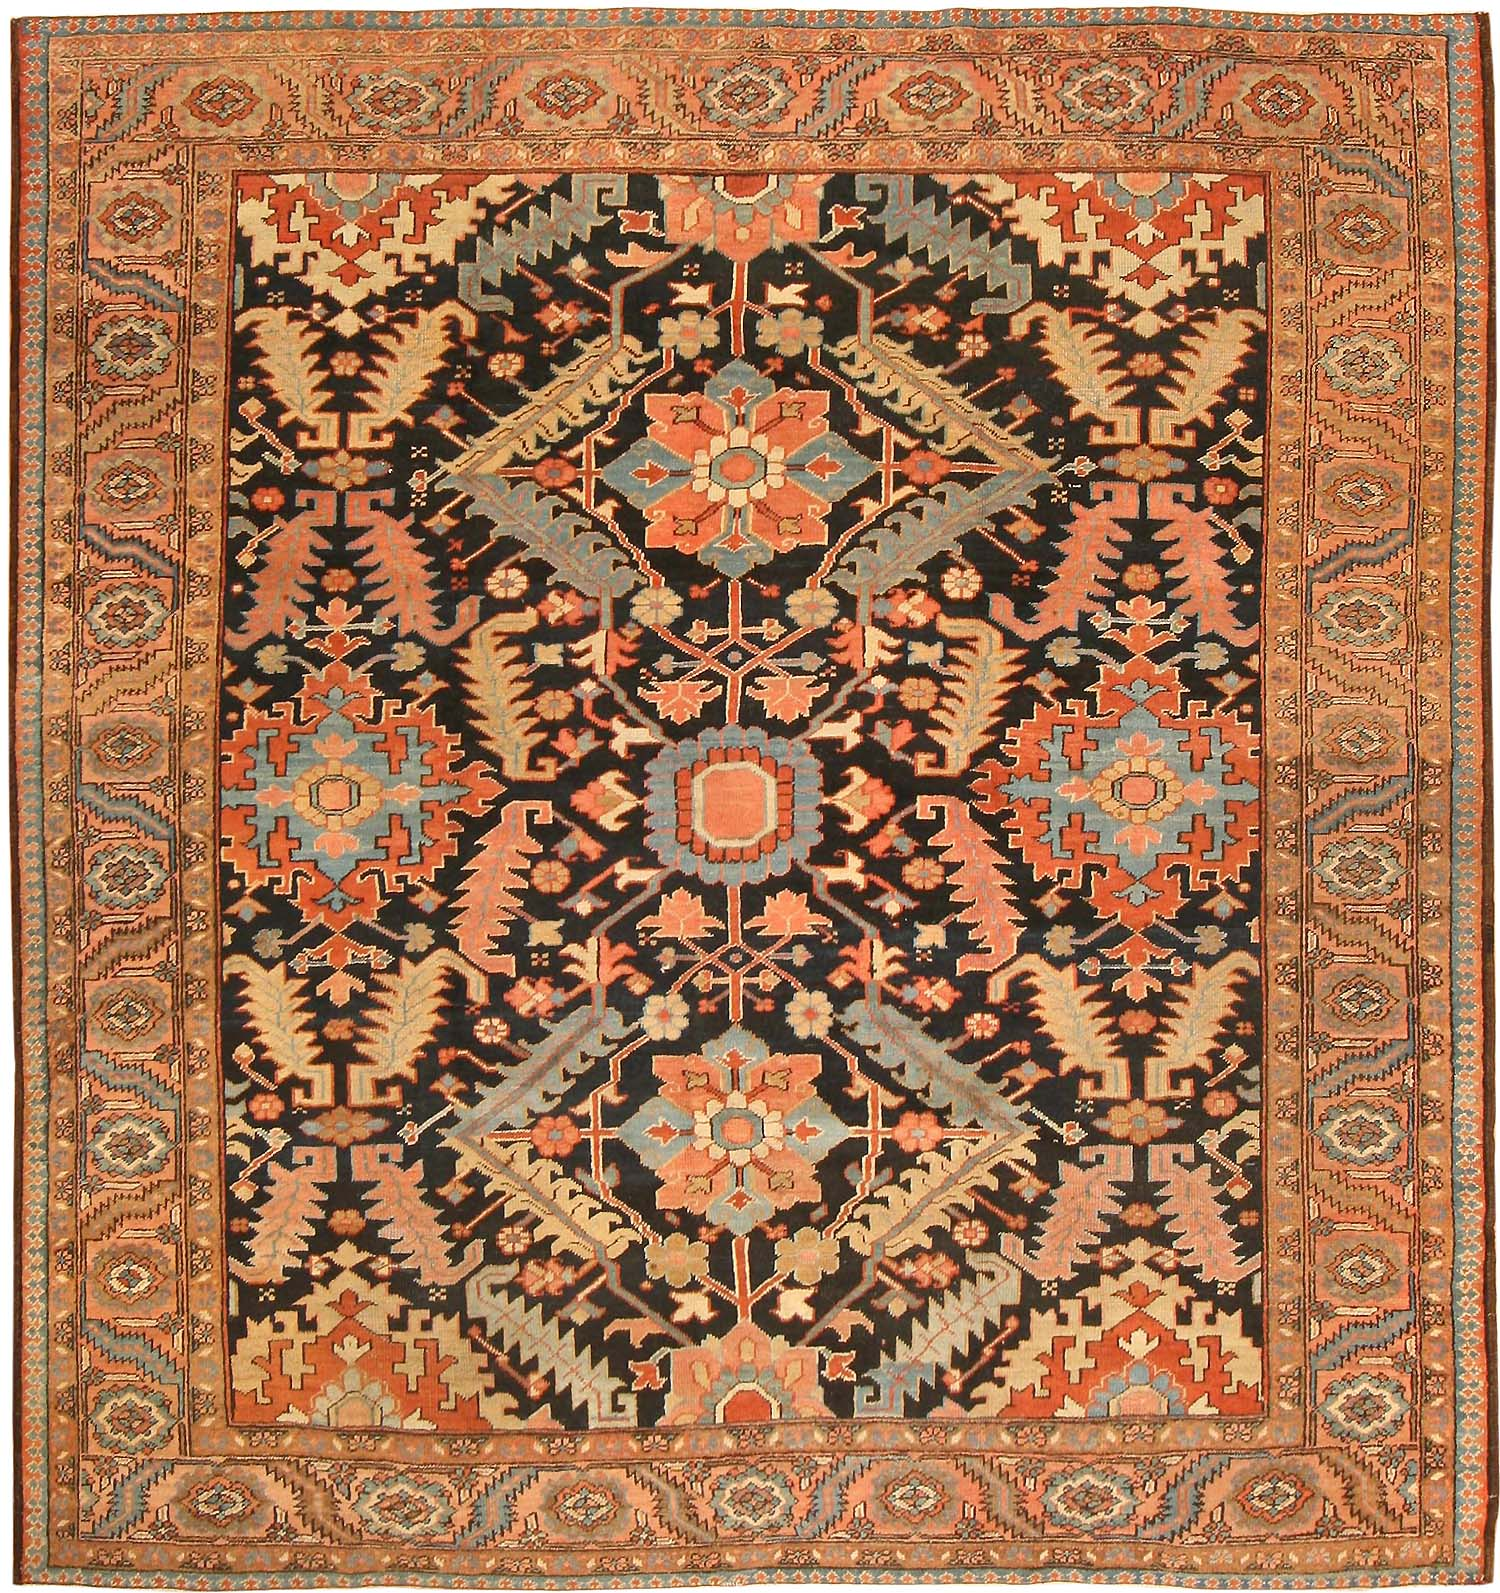 Persian Rugs For Sale: Antique Heriz Serapi Persian Rugs 43247 For Sale